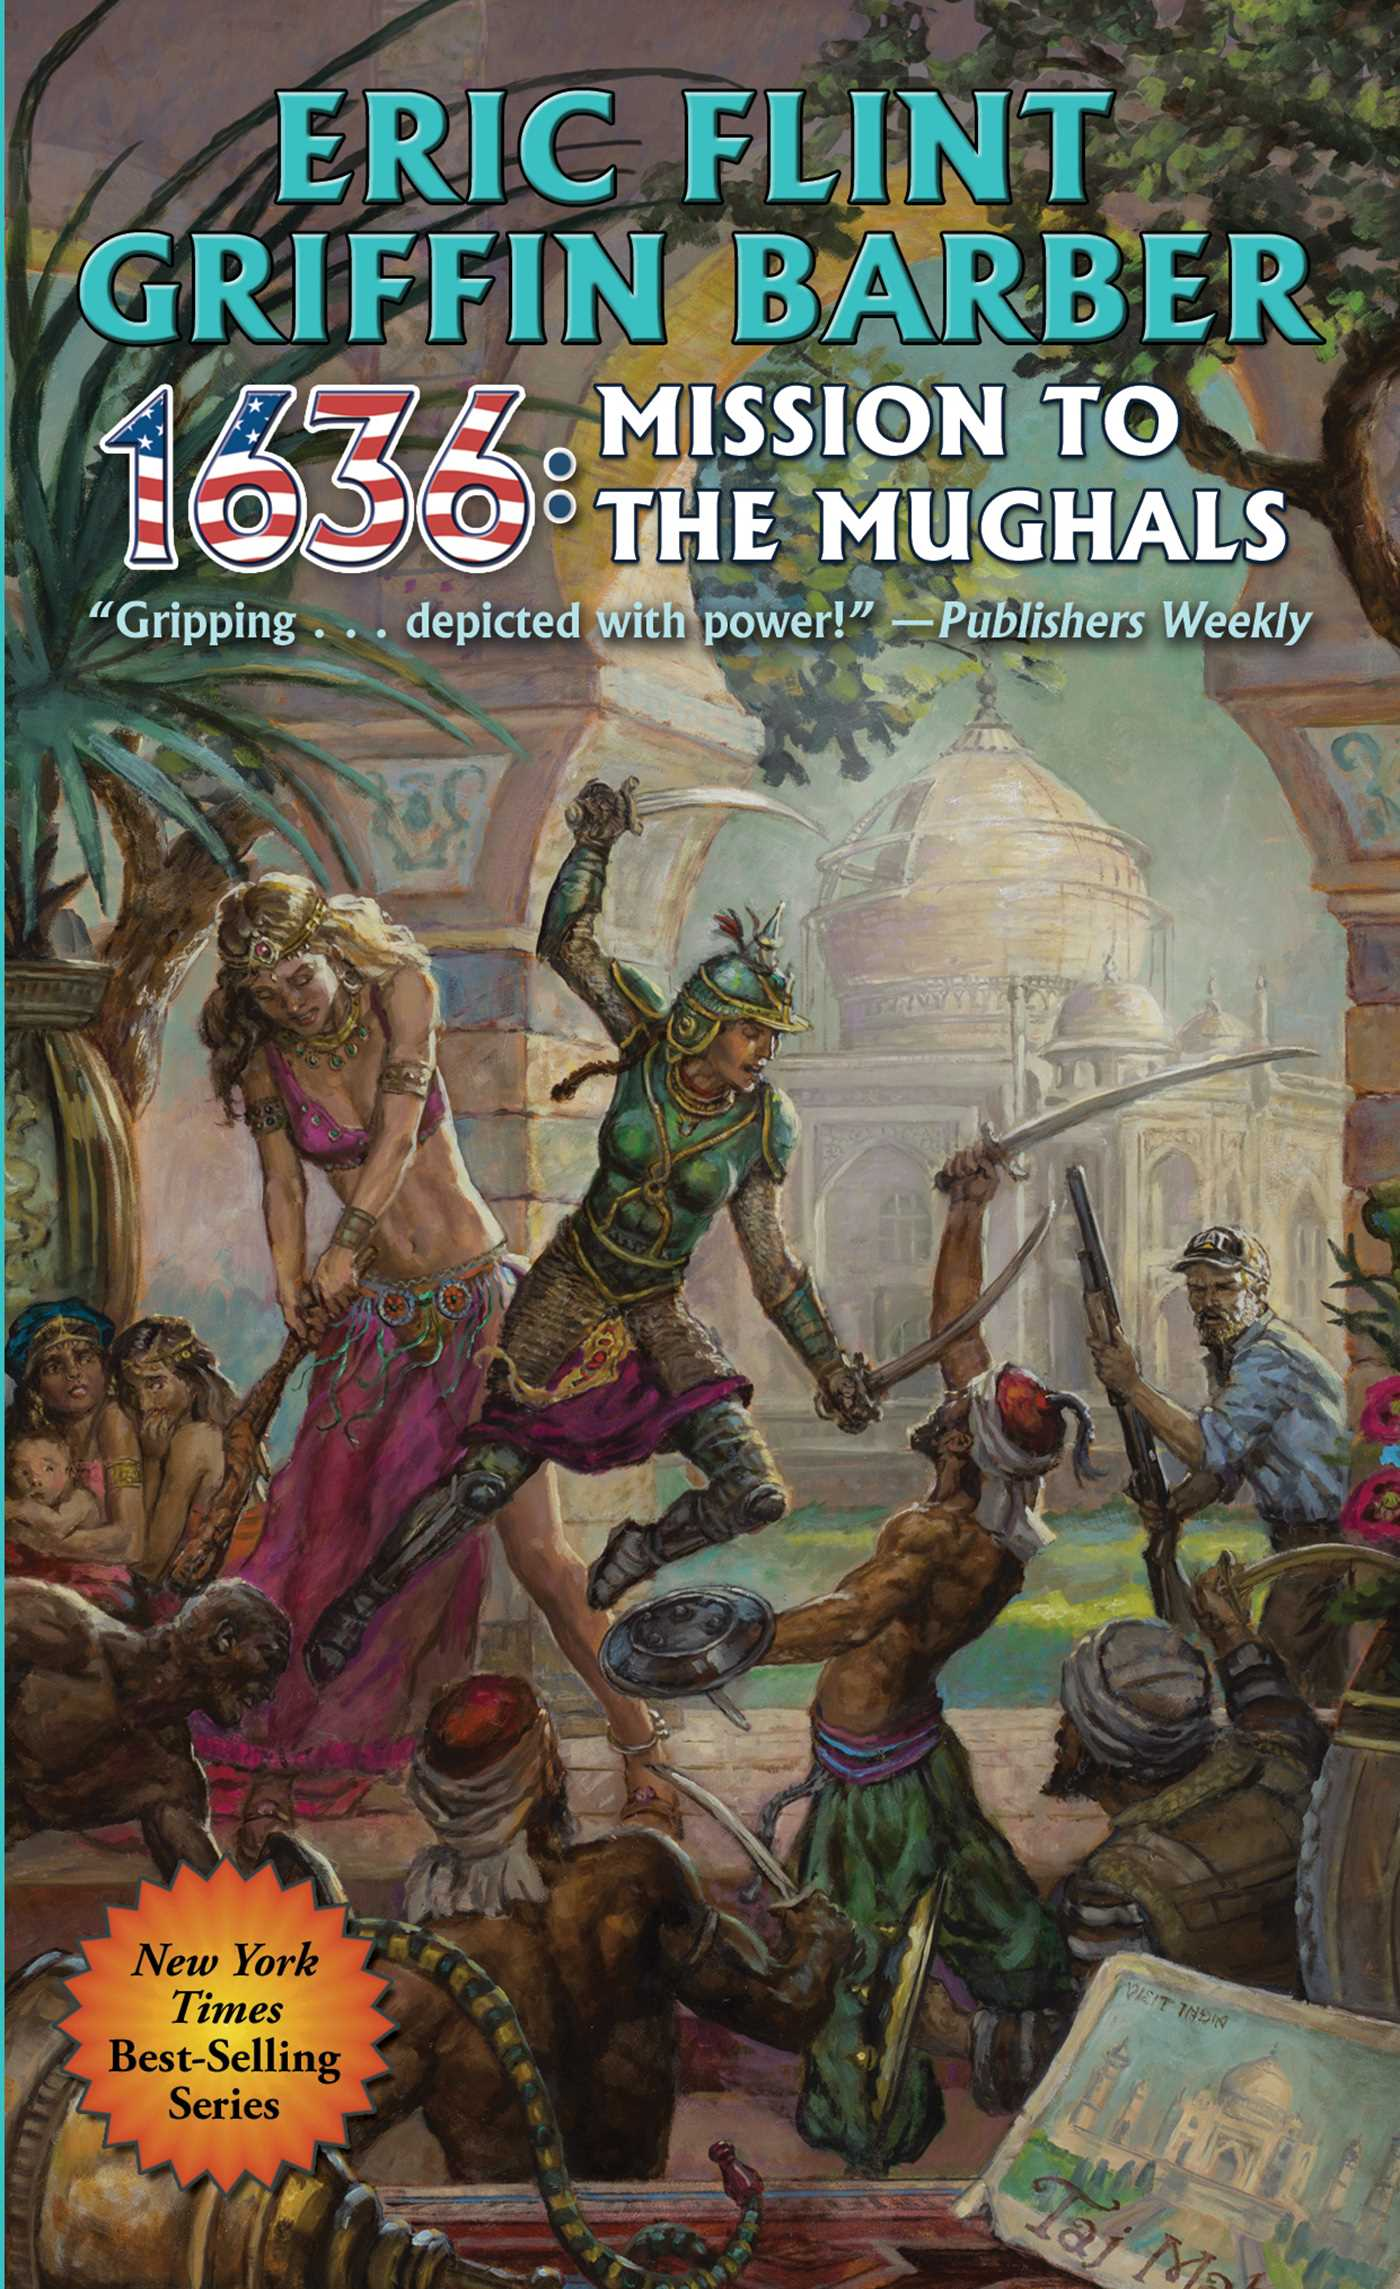 1636 mission to the mughals 9781481483018 hr